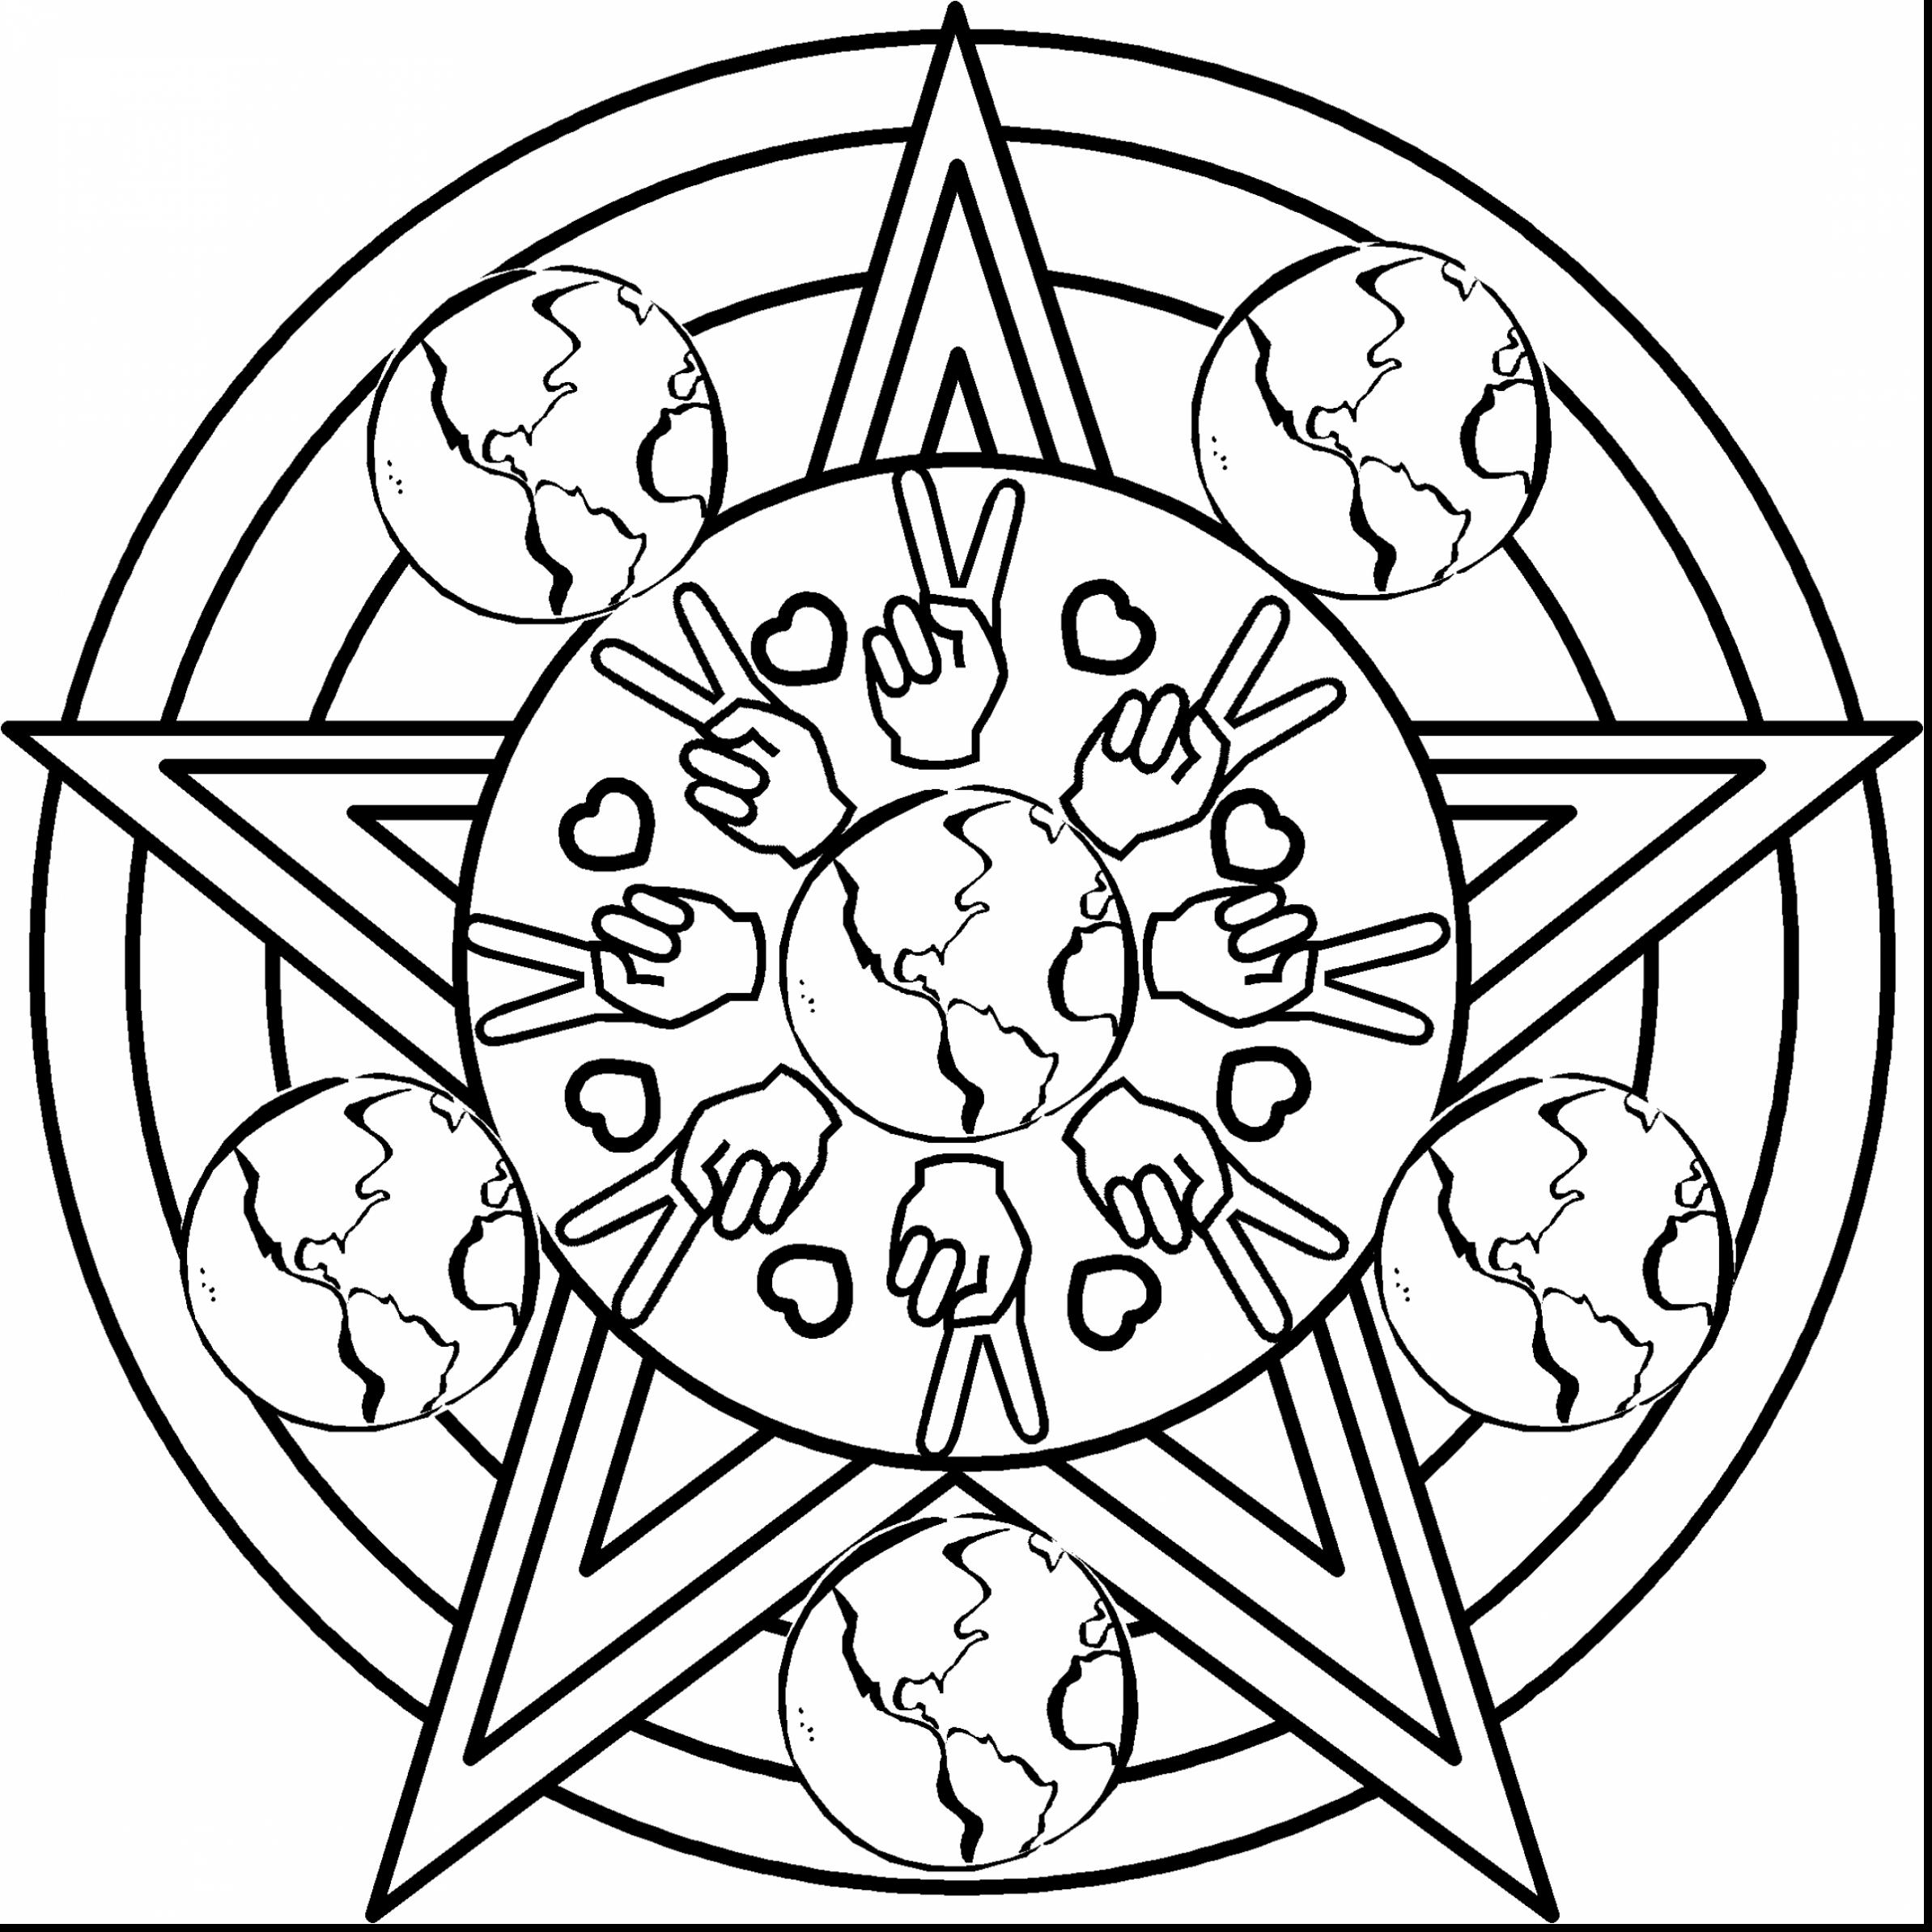 2387x2387 Wonderful Peace Love And Happiness Coloring Pages With Peace